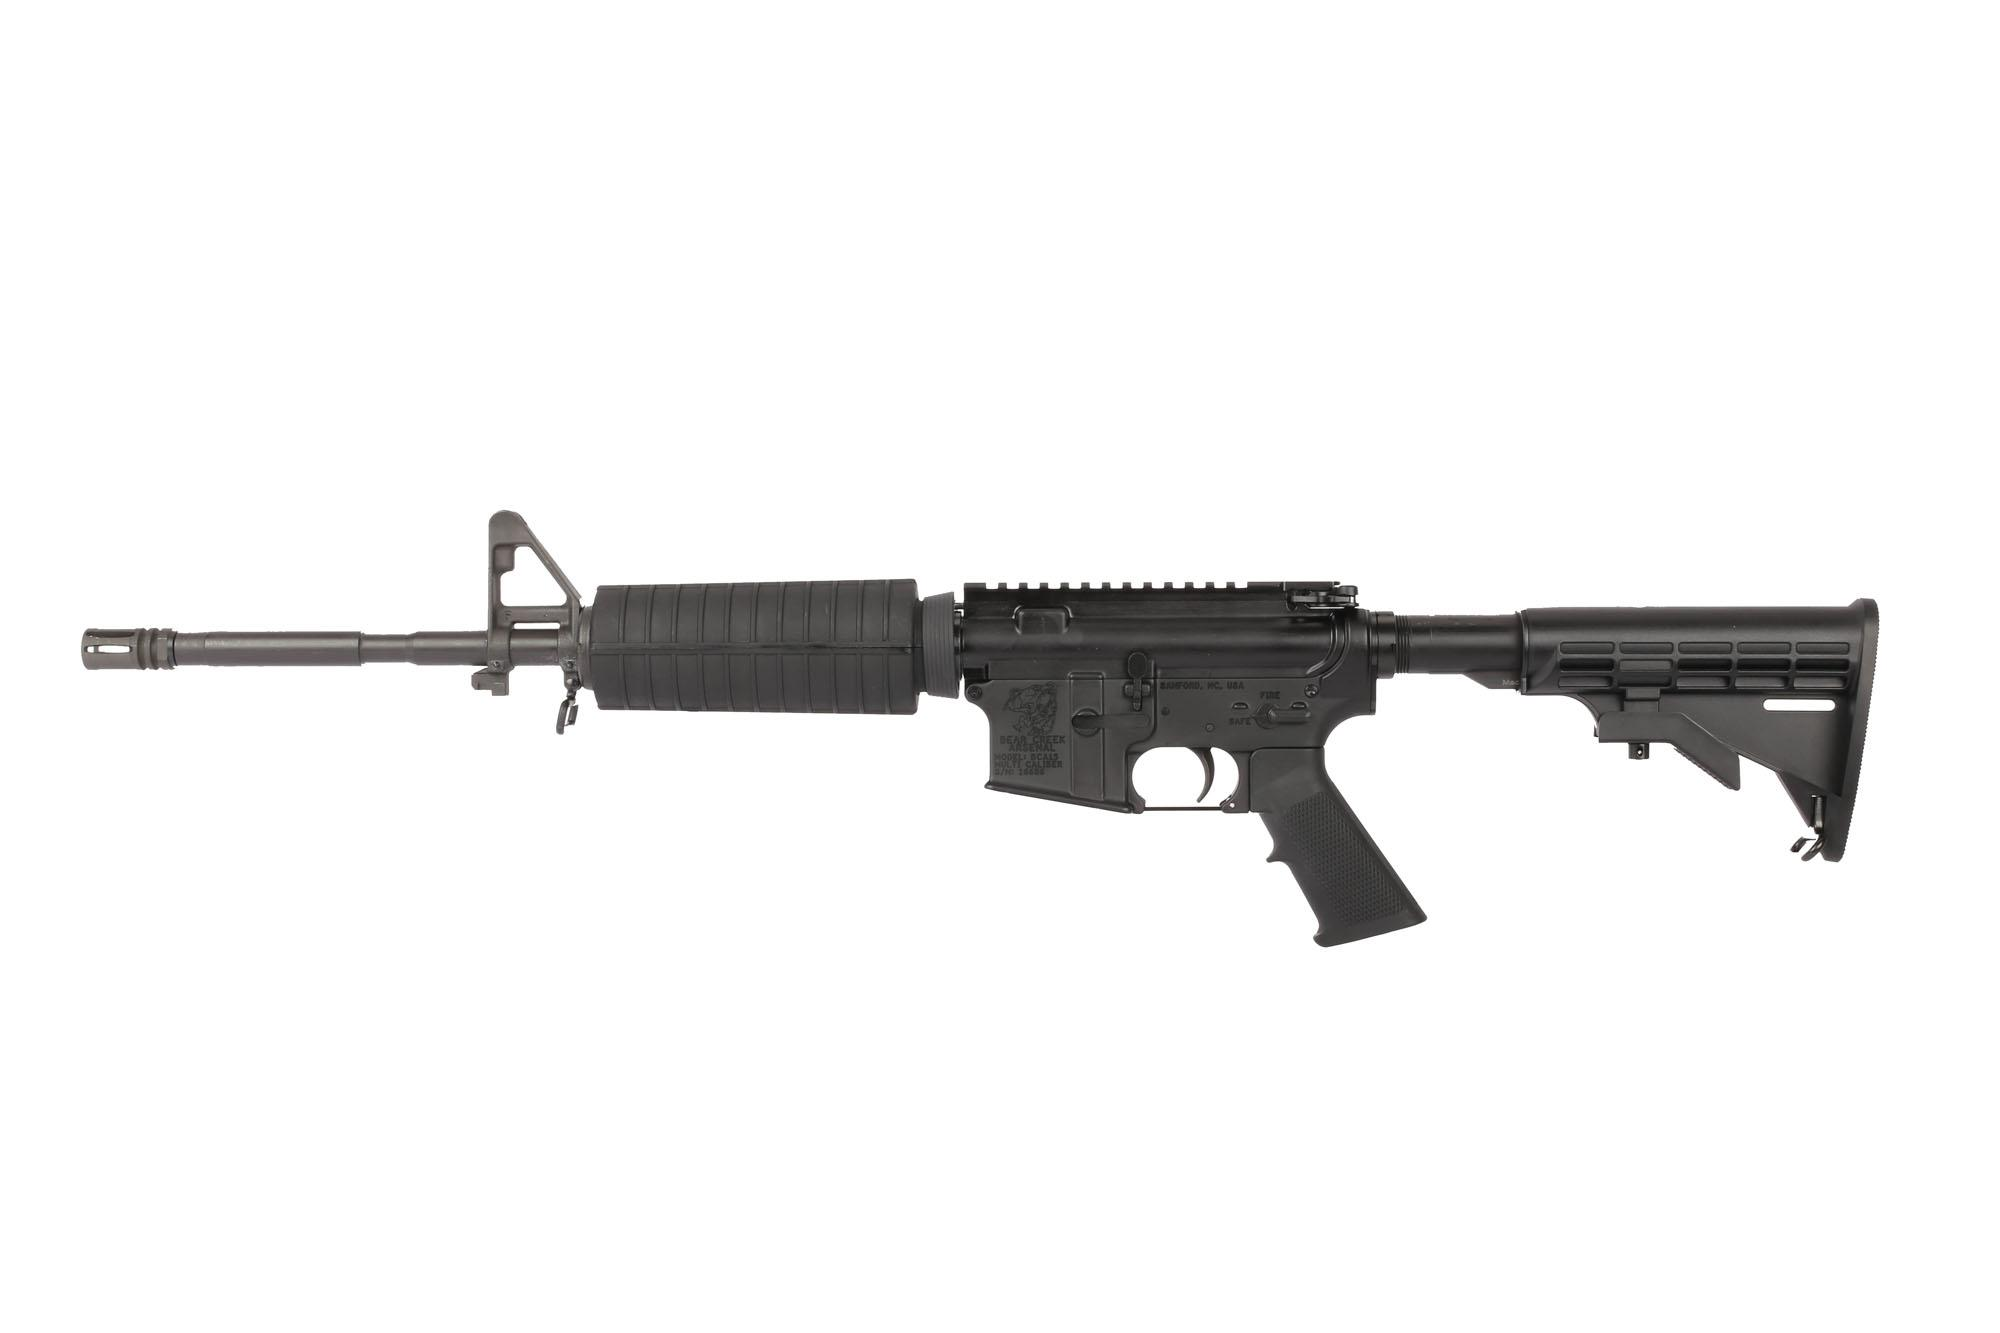 Bear Creek Arsenal 16 .223 Wylde 1:9 Carbine Length M4 Rifle